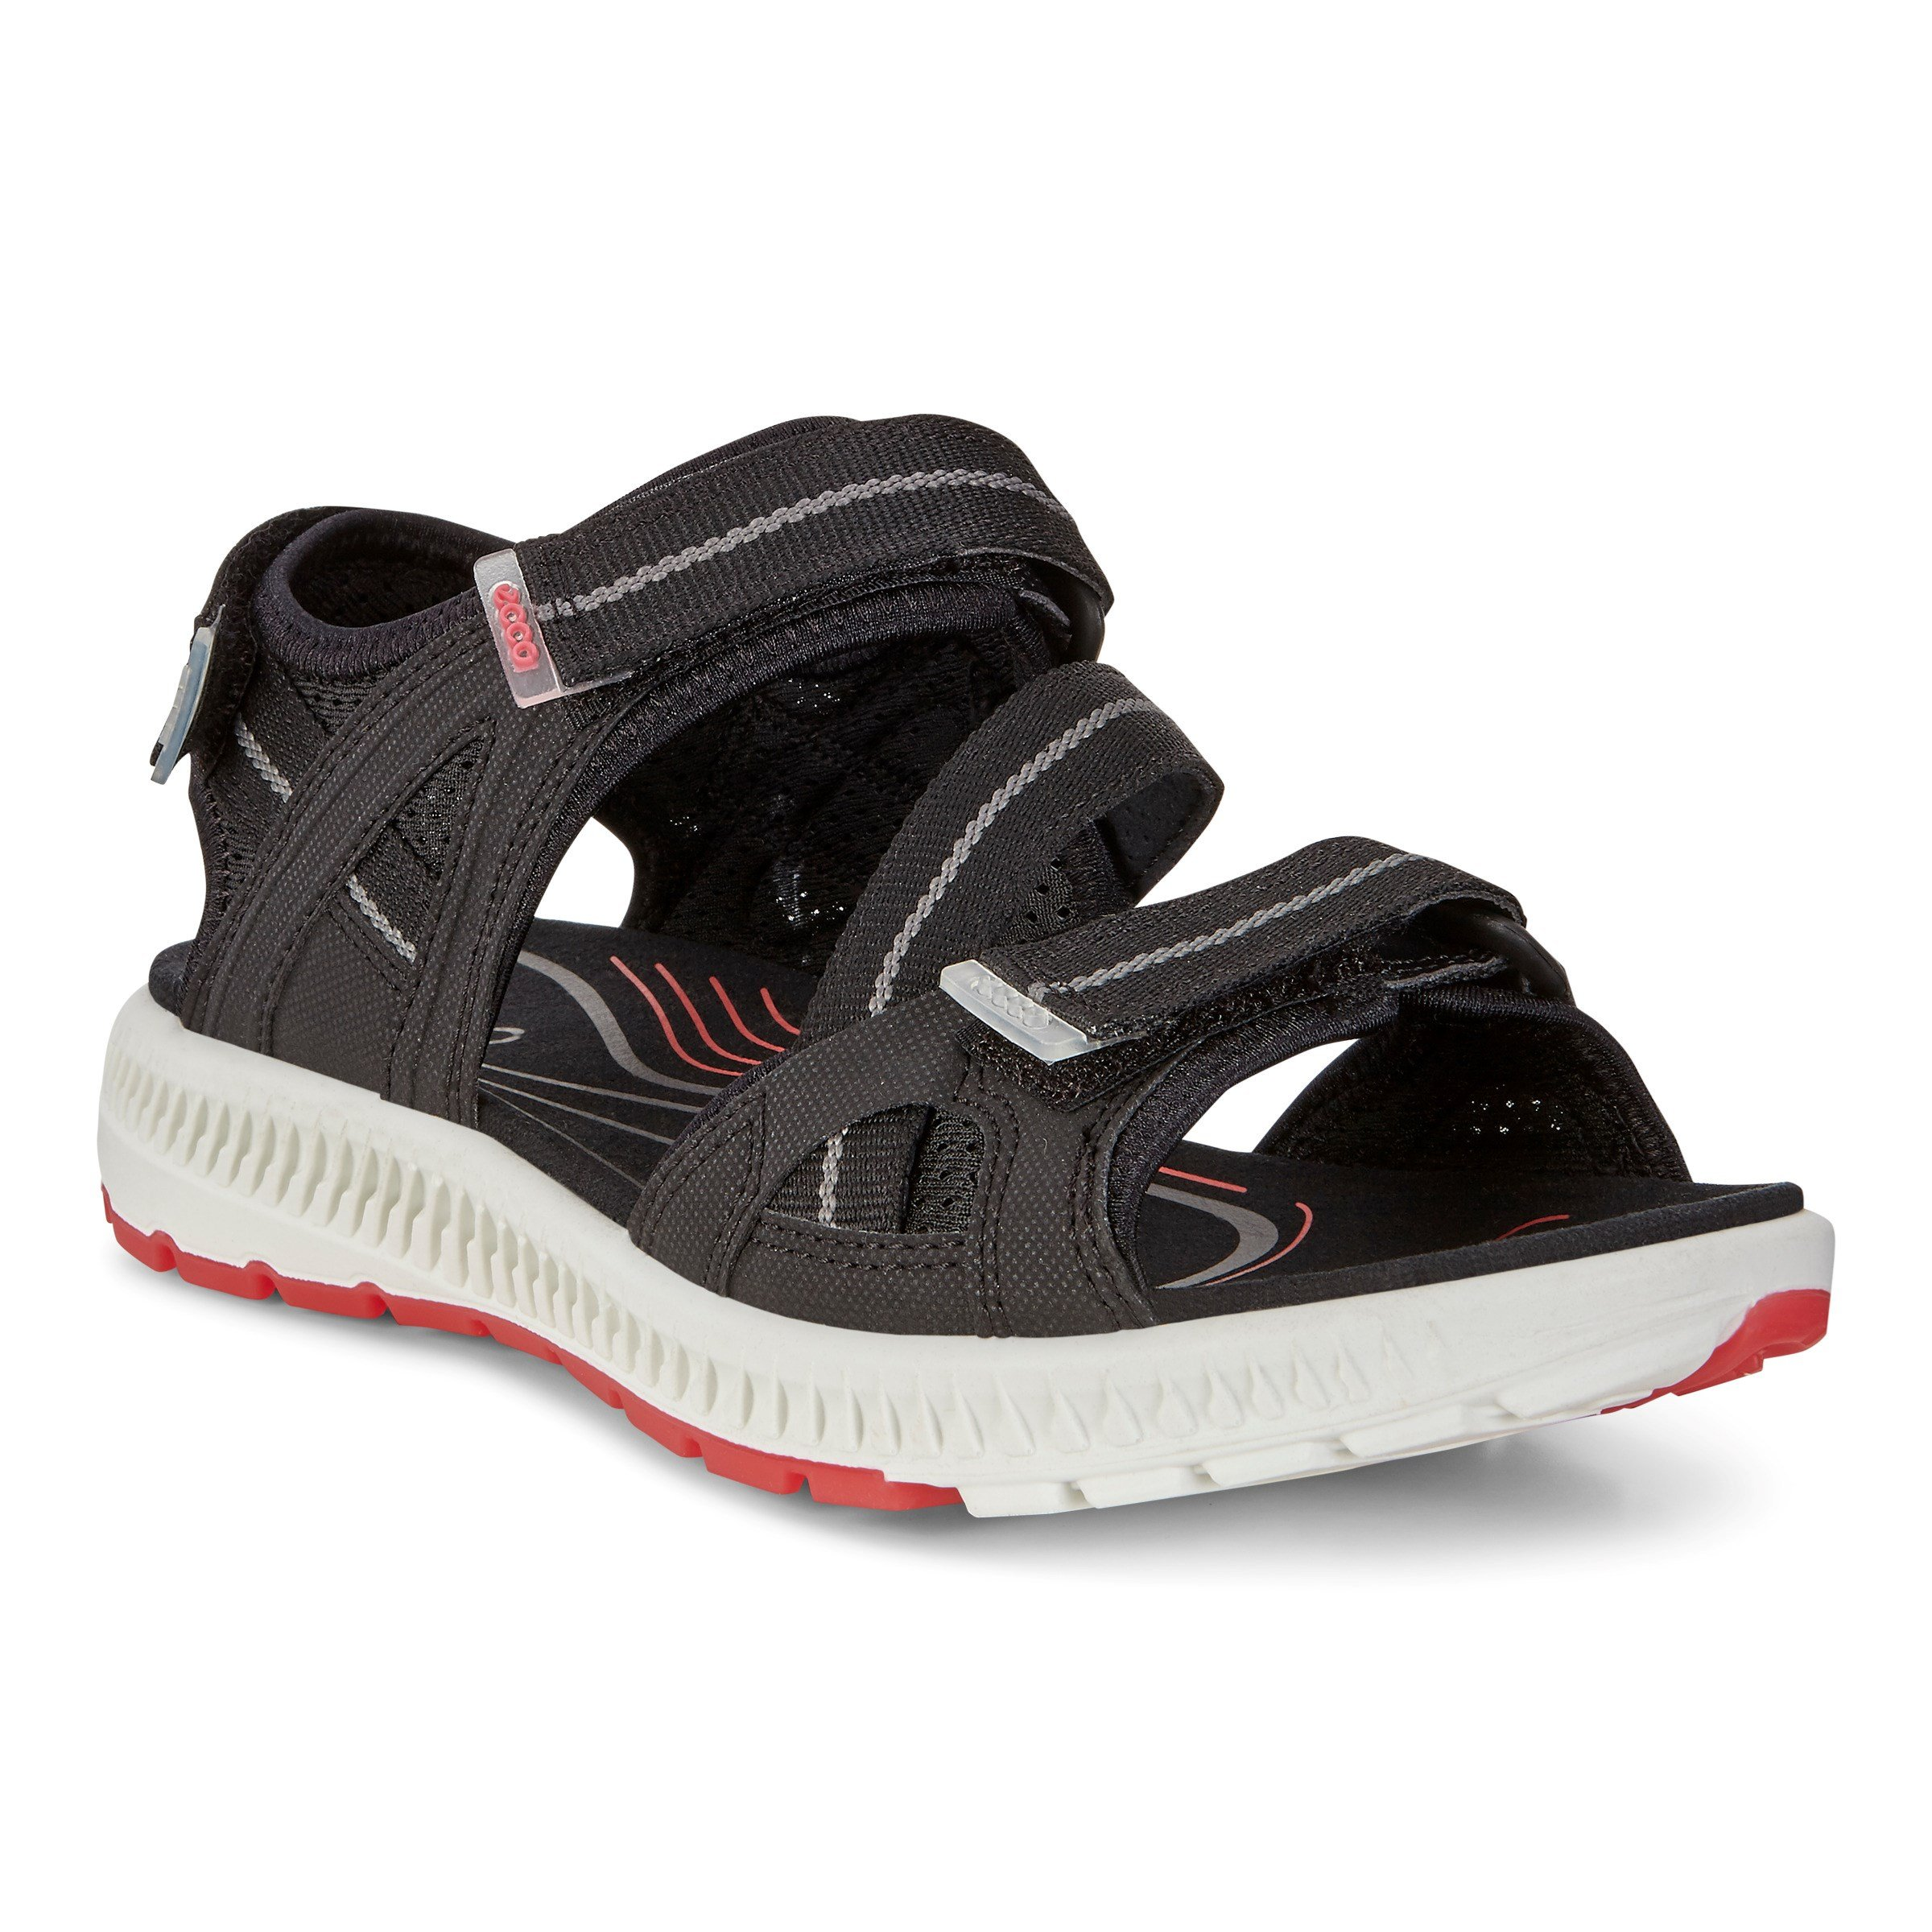 ECCO Women's Terra 3S Athletic Sandal, Black/Teaberry, 41 EU/10-10.5 M US